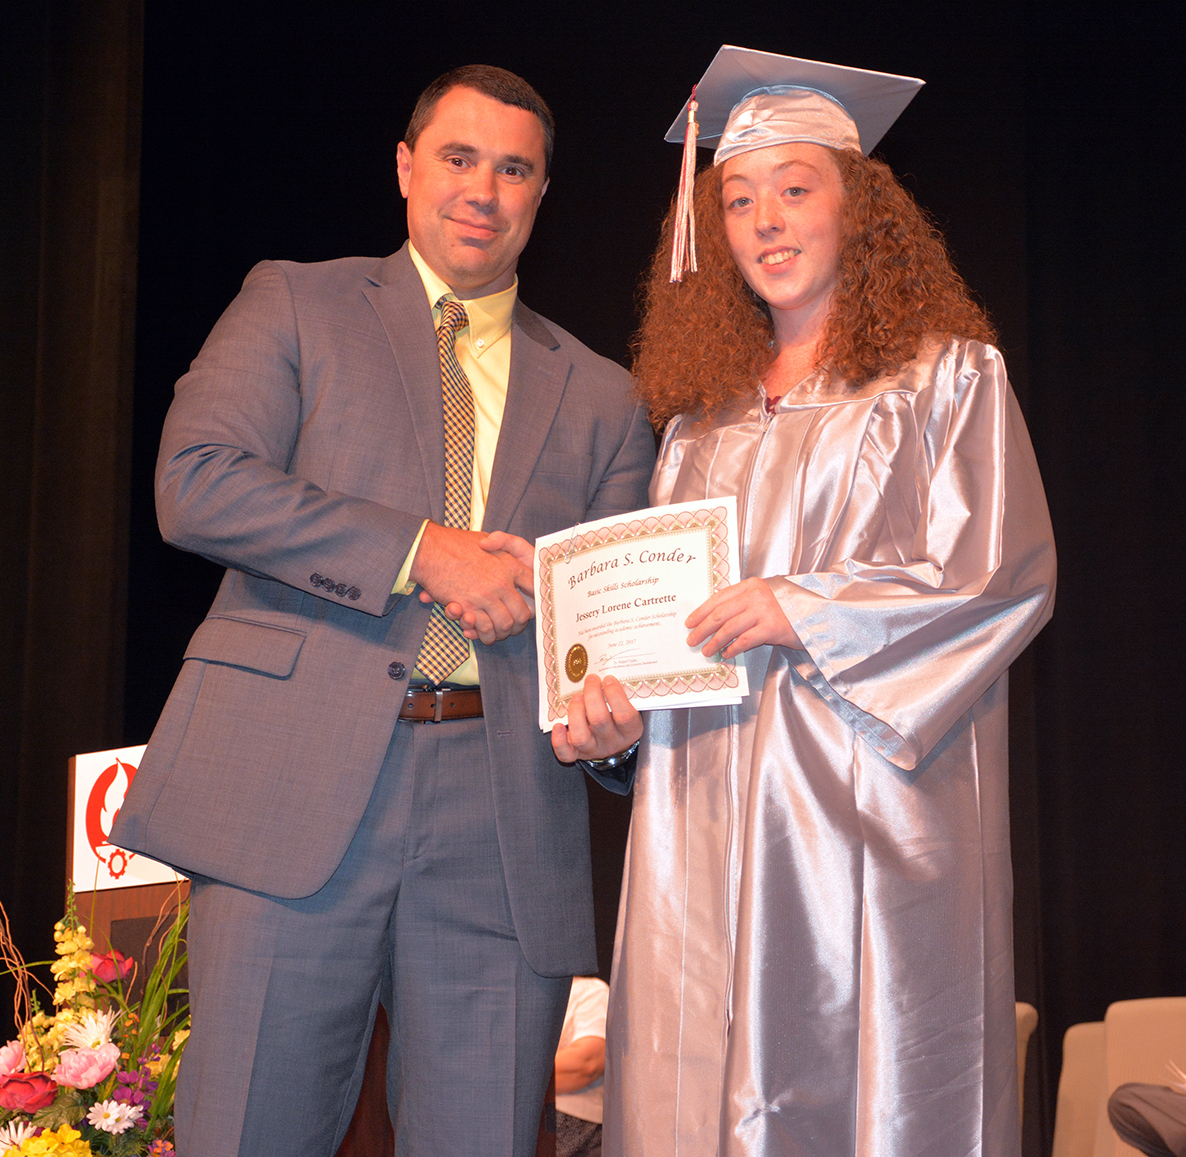 1 Jessery Cartrelle.jpg:  Pictured is Adult High School graduate Jessery Cartrelle receiving the Barbara S. Conder Basic Skills Scholarship. Presenting the scholarship is Dr. Robbie Taylor, vice president of the Workforce and Economic Development division at Richmond Community College